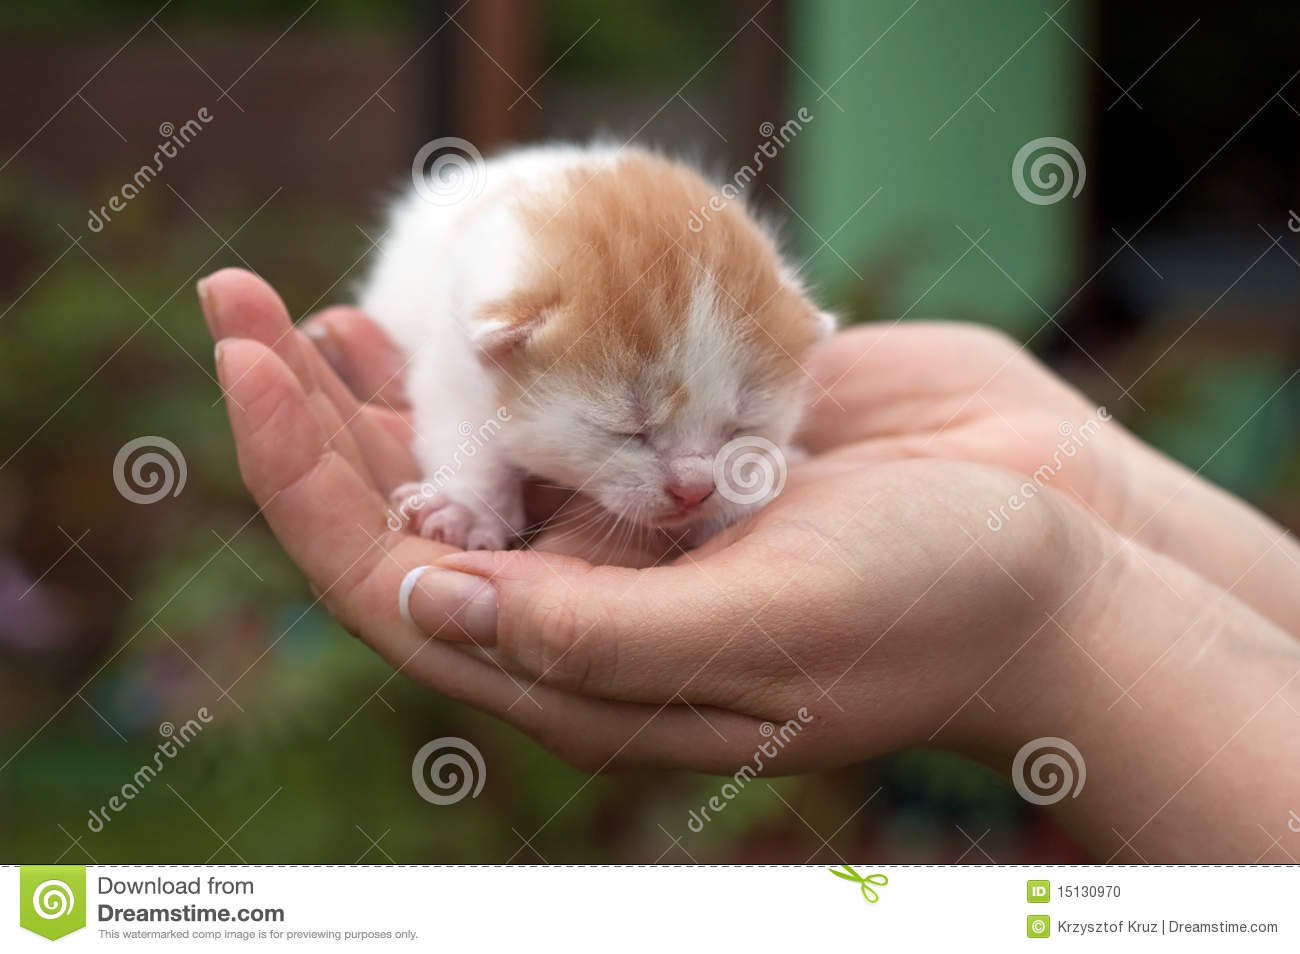 cute cats stock photo. image of cats, kitty, pretty, cute - 15130970